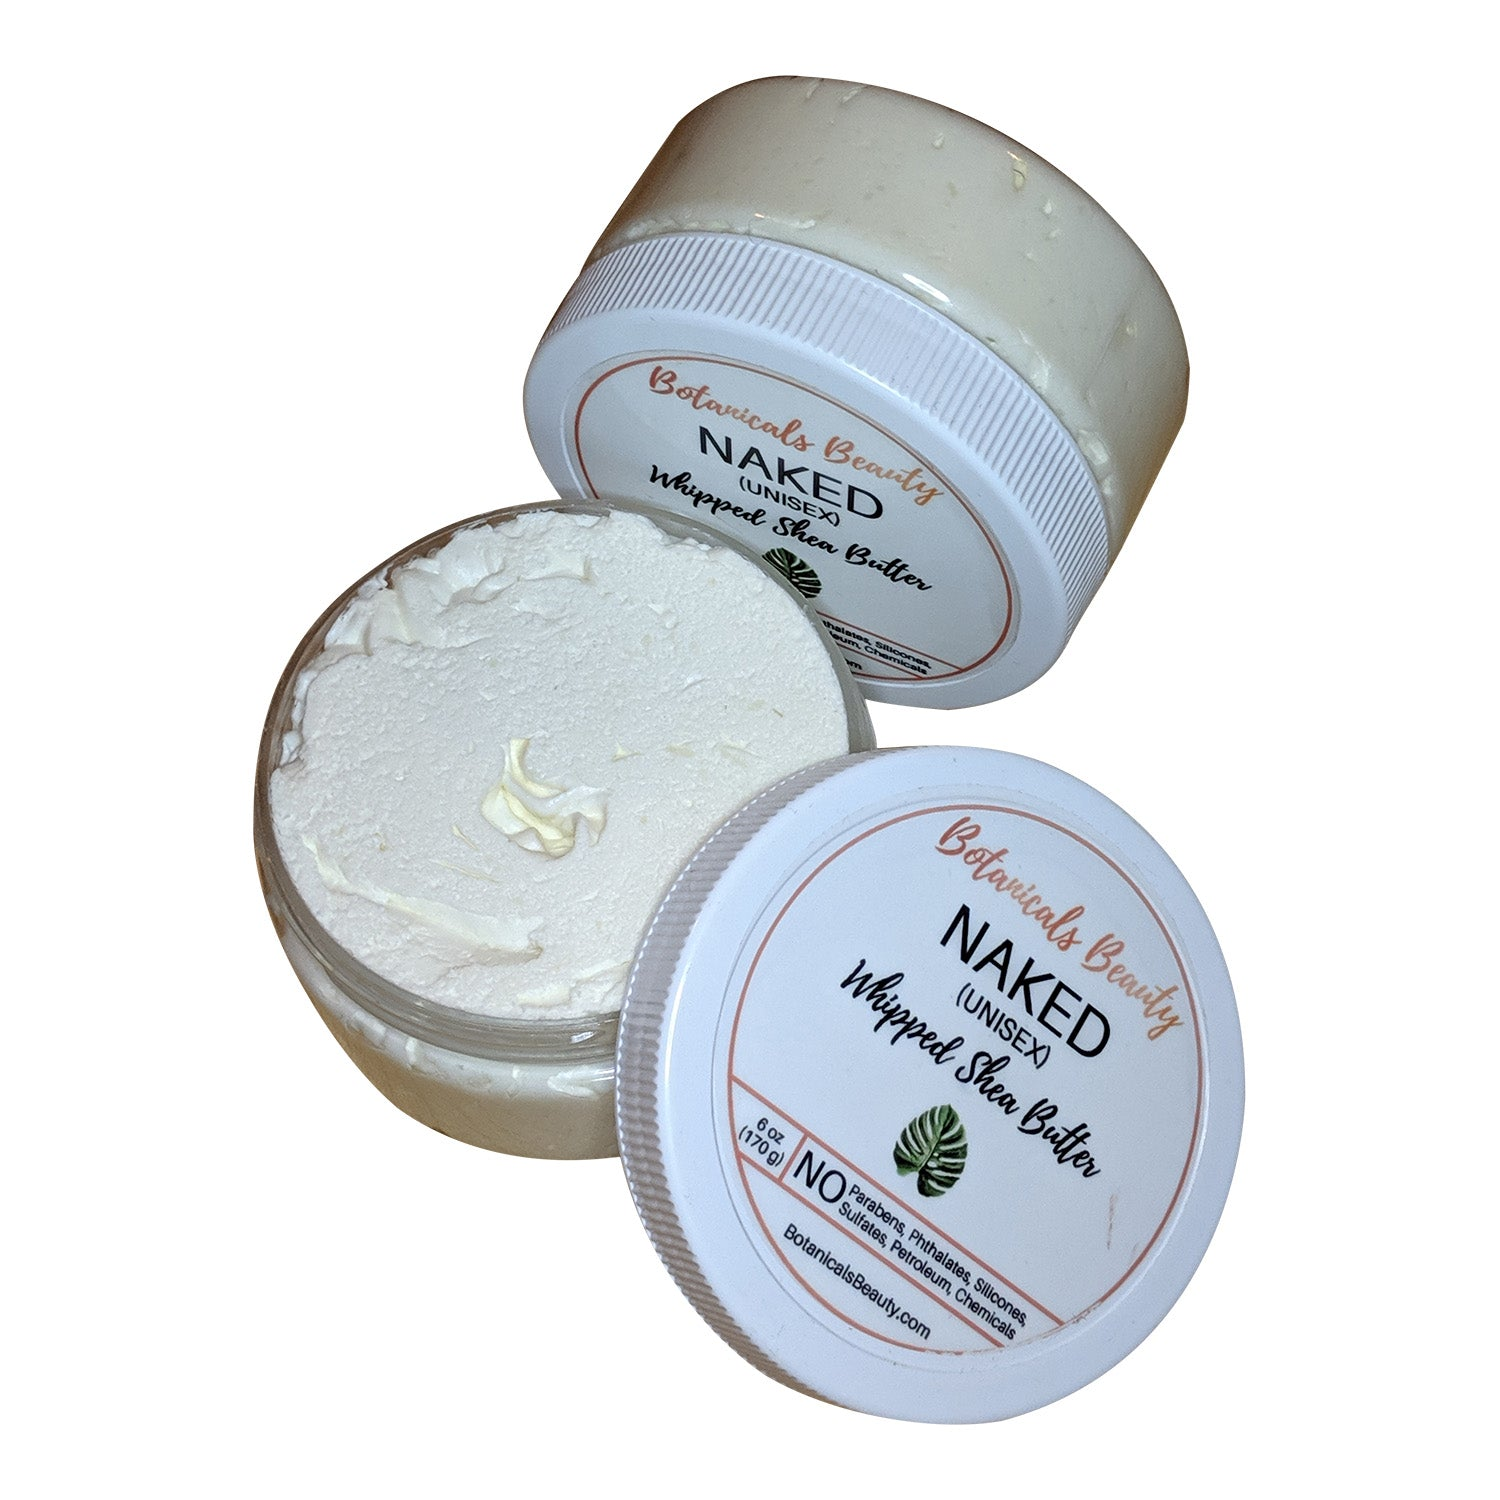 Botanicals Beauty Naked (Unisex)  Whipped Shea Butter